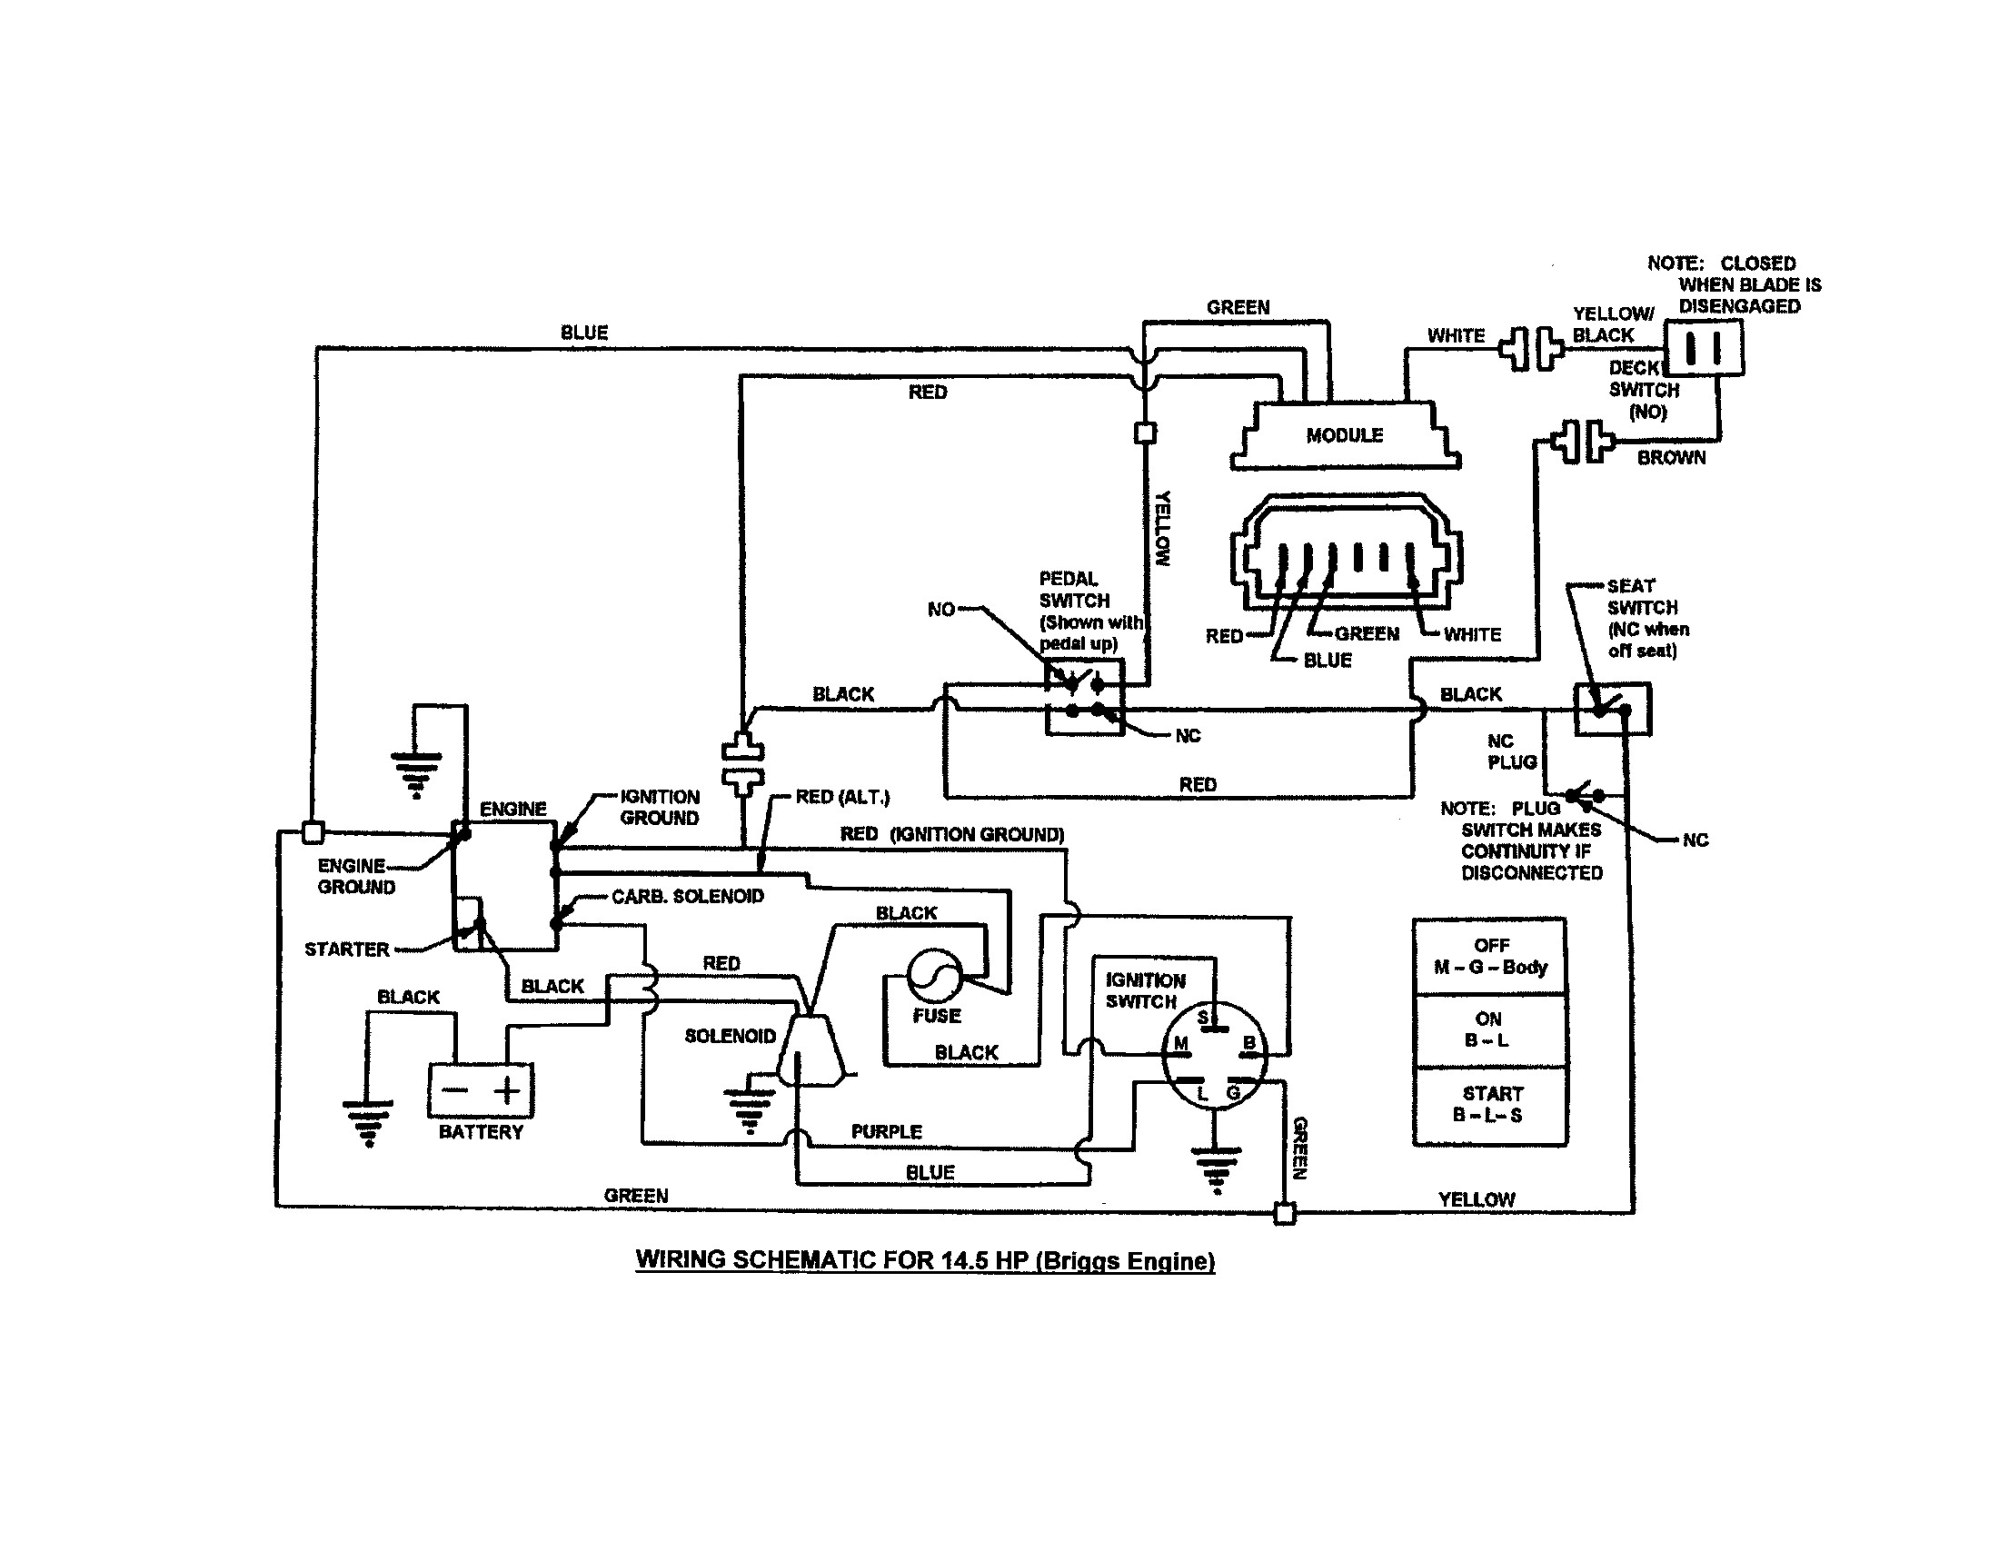 hight resolution of murray rider wiring harness wiring diagram databasewiring diagram for murray riding lawn mower solenoid